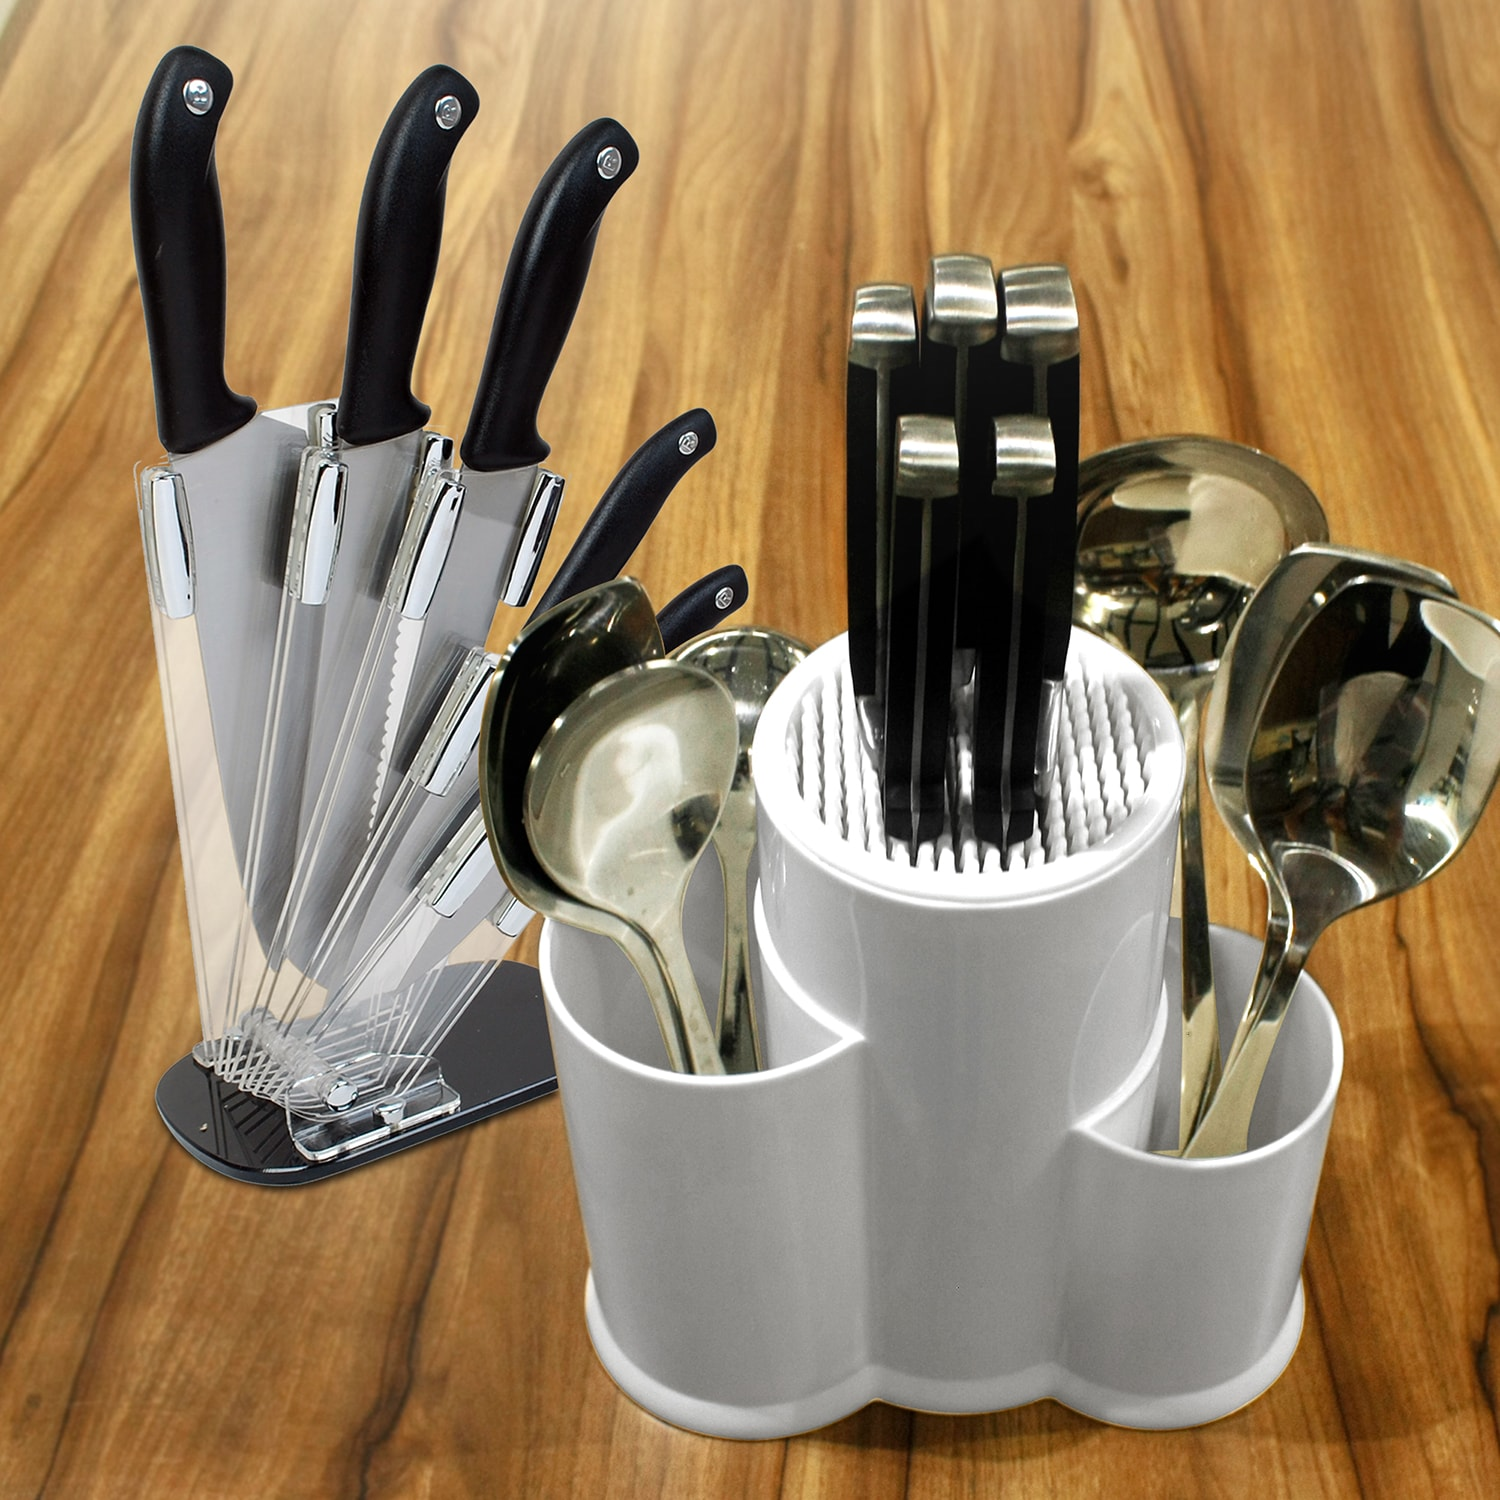 Masflex Knife Set and Knife and Utensil Block